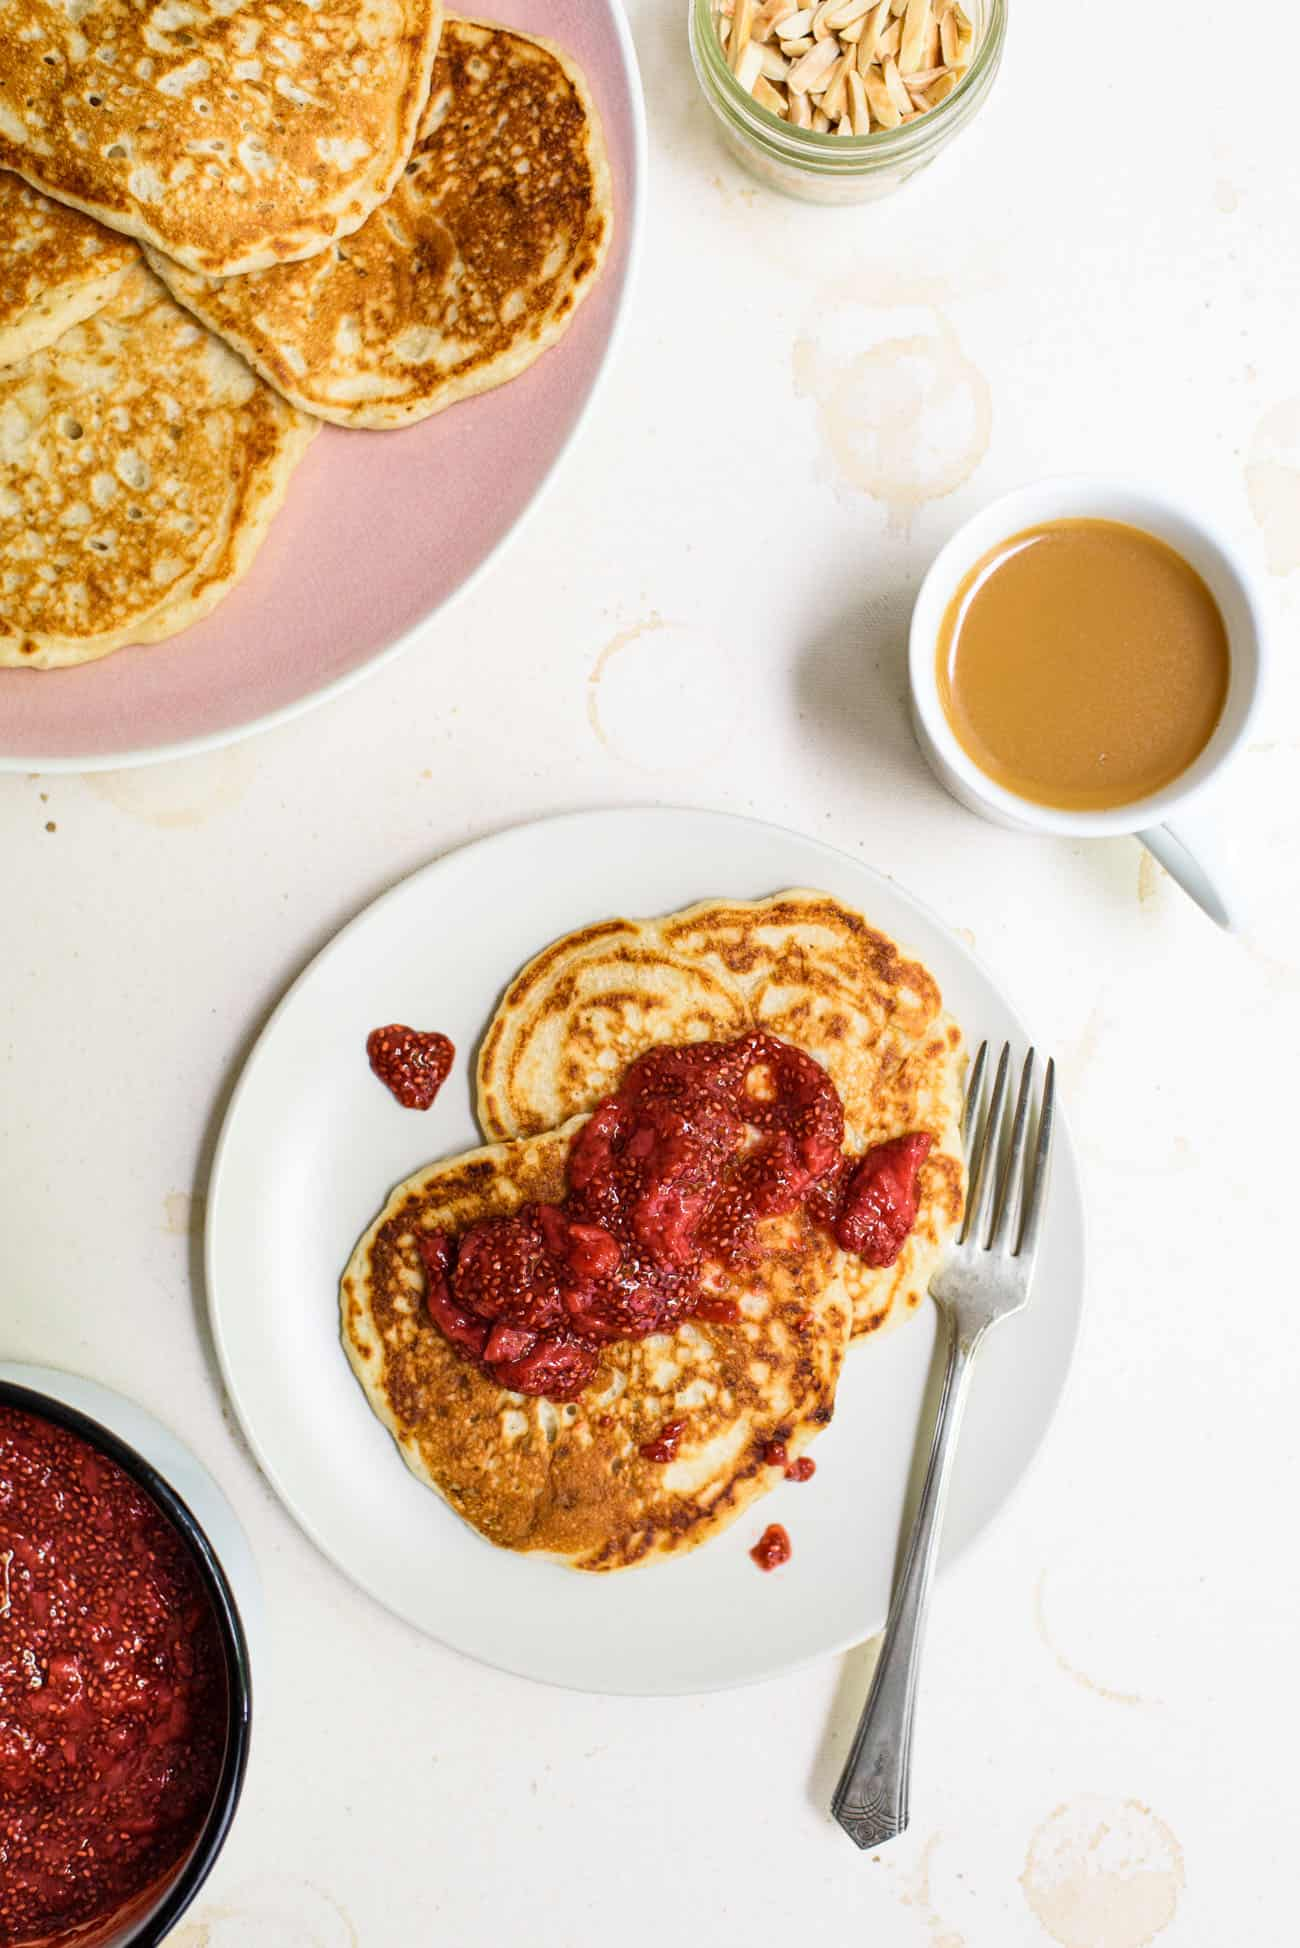 Two sourdough discard pancakes on a white plate, dolloped with strawberry chia jam, next to a cup of coffee